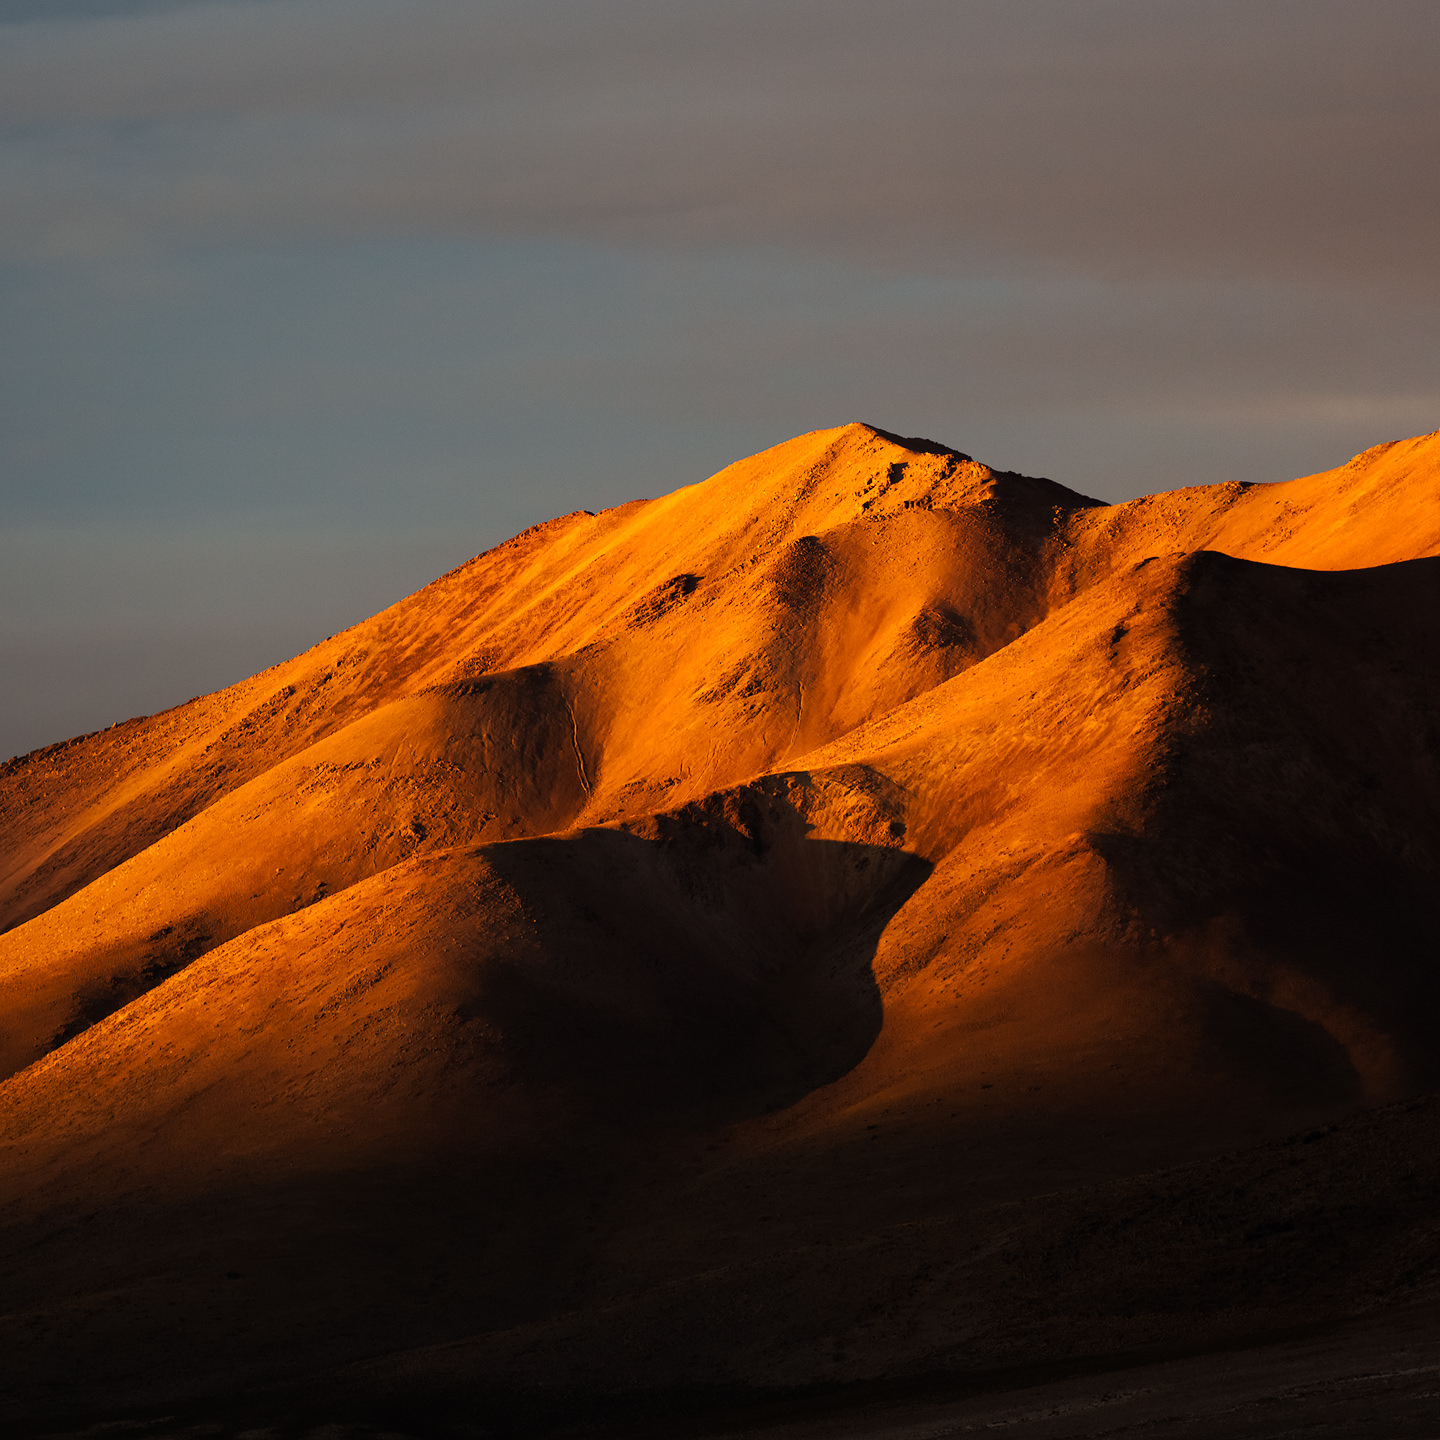 Sunset light hitting distand hills.